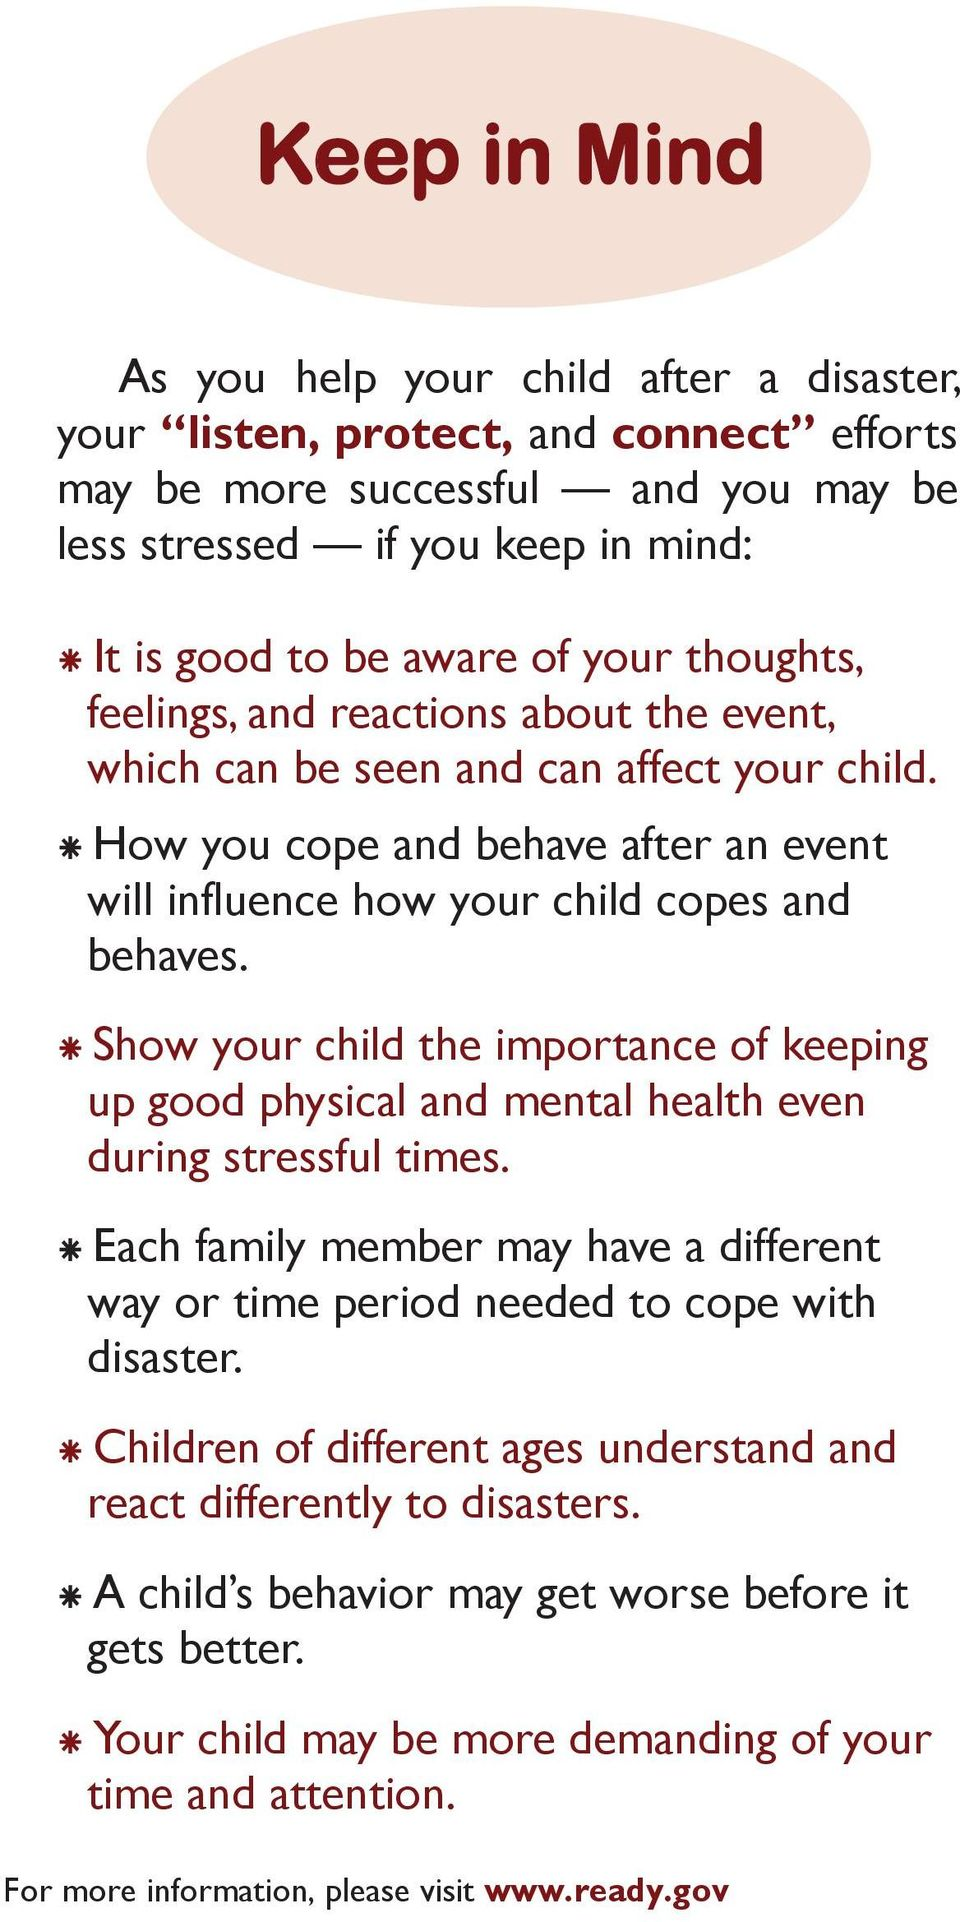 How you cope and behave after an event will influence how your child copes and behaves. Show your child the importance of keeping up good physical and mental health even during stressful times.